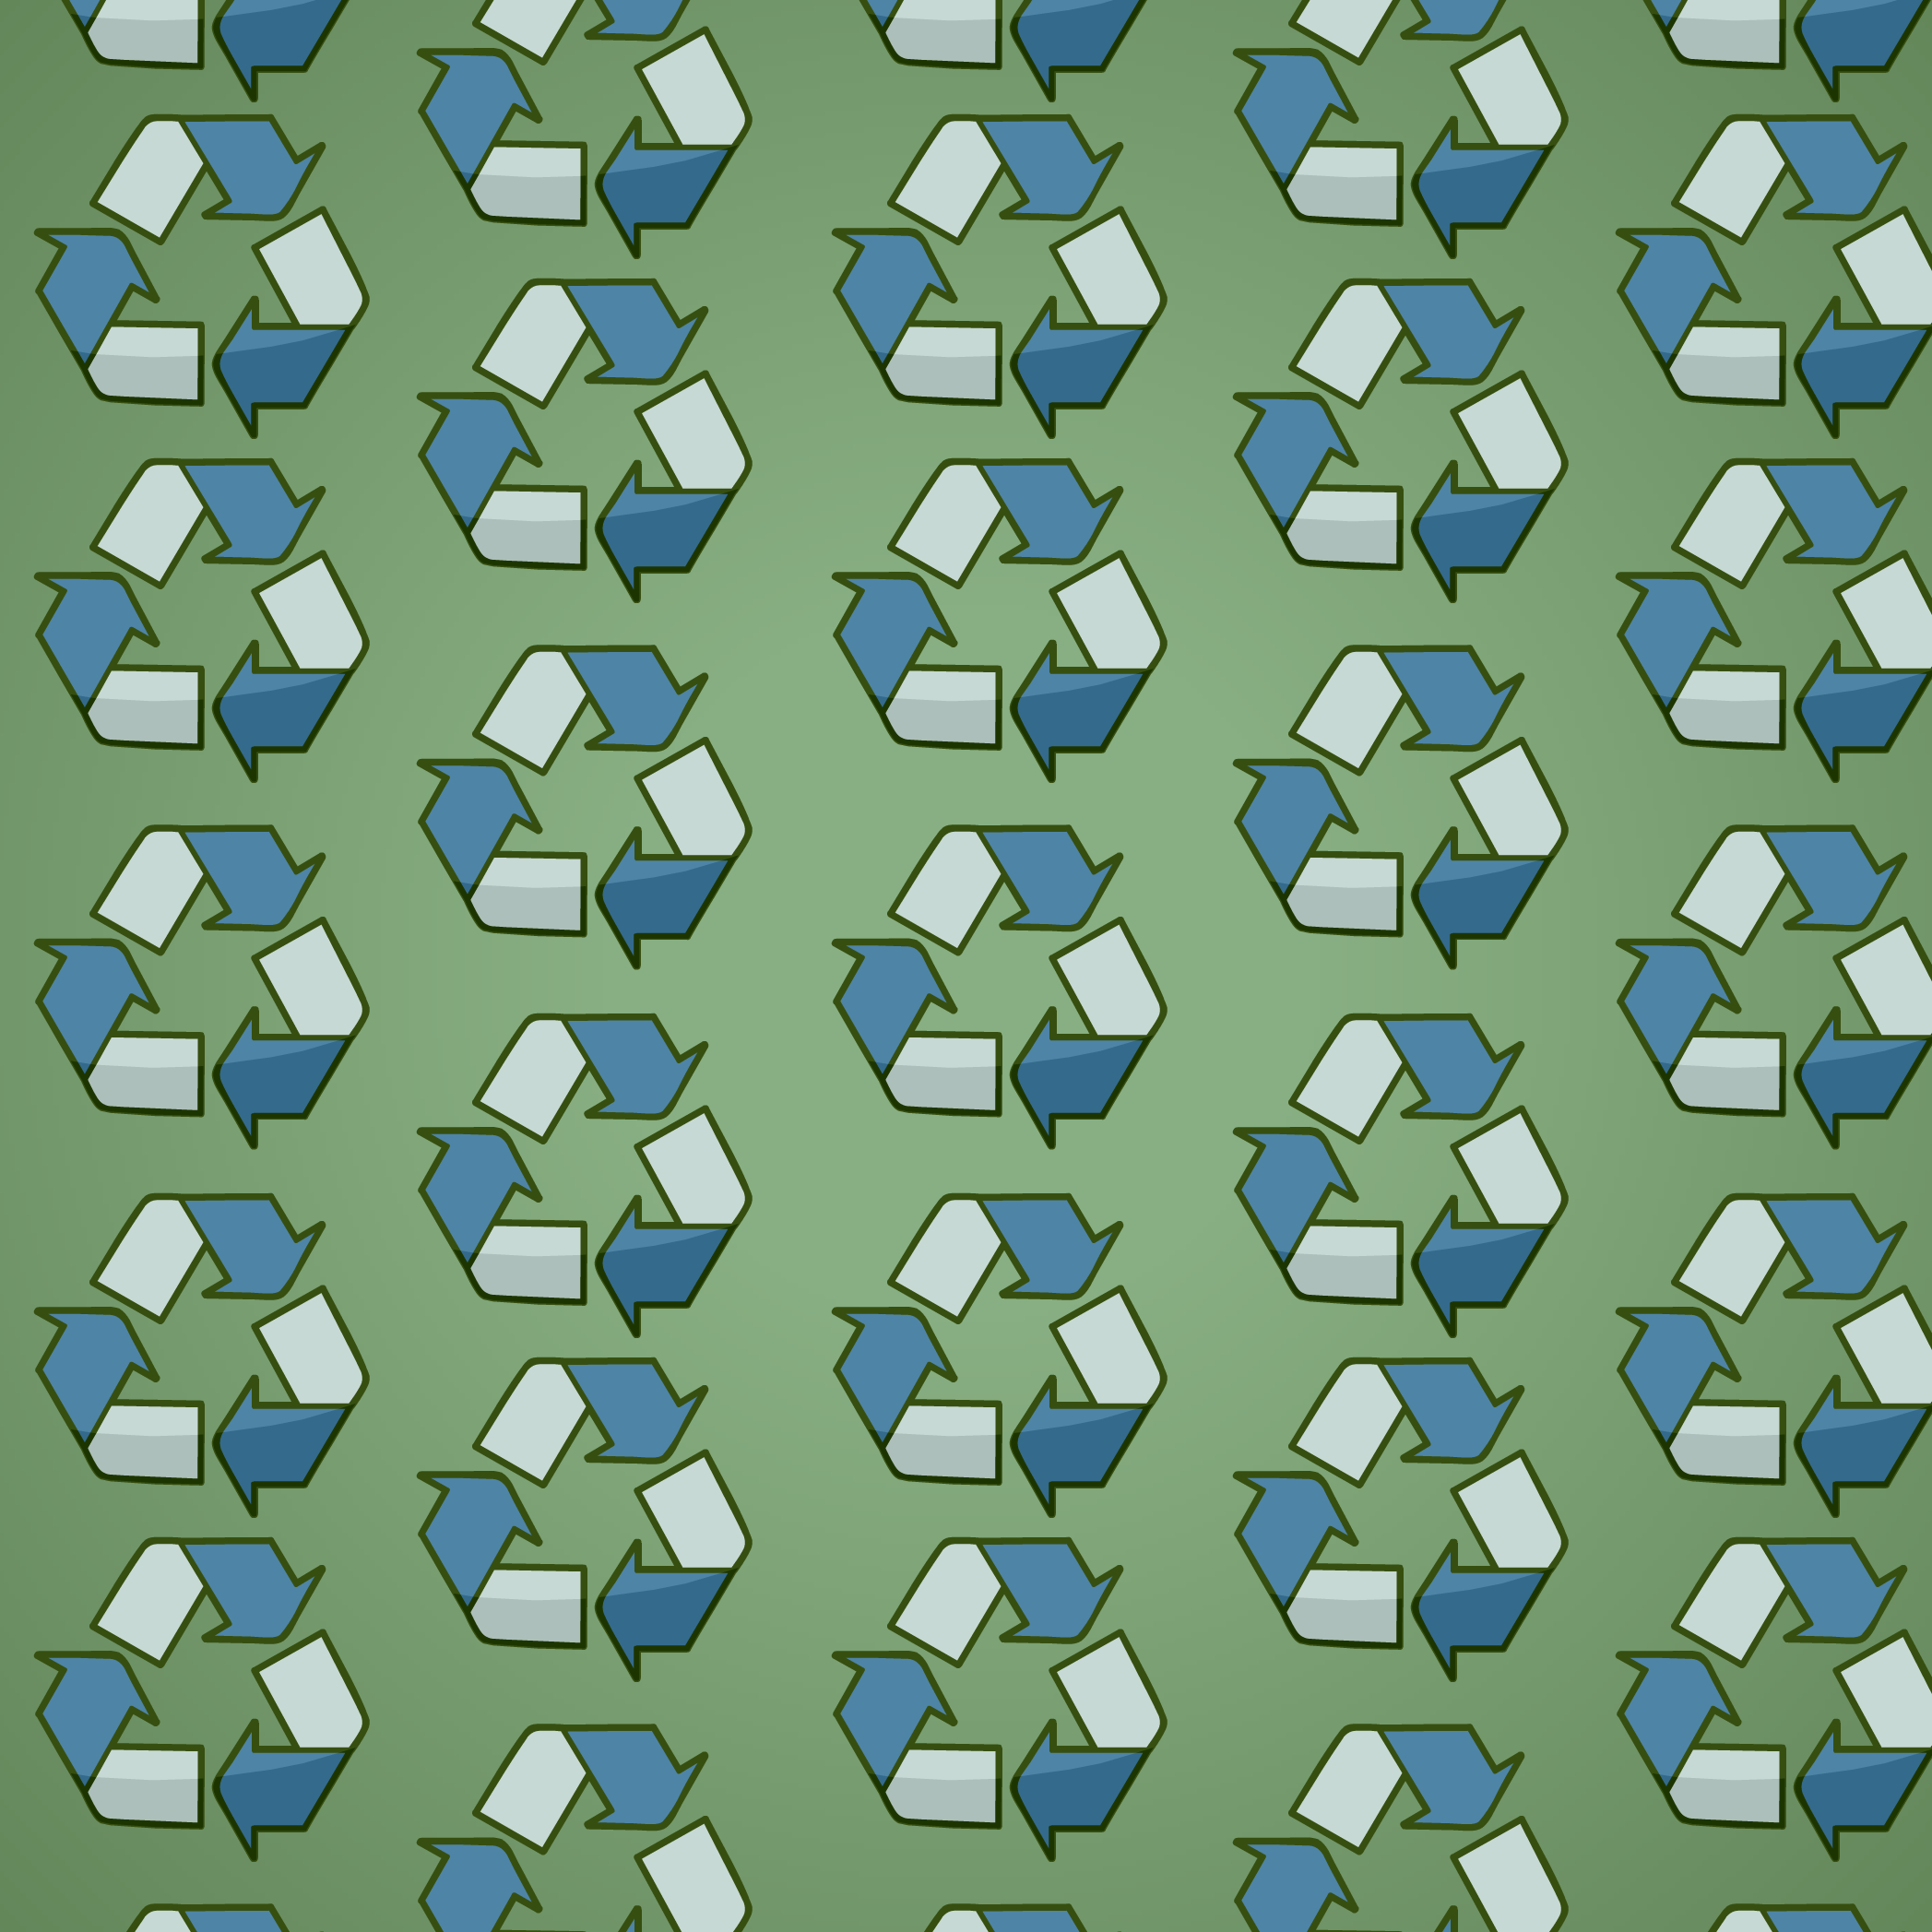 Recycle Decal Background